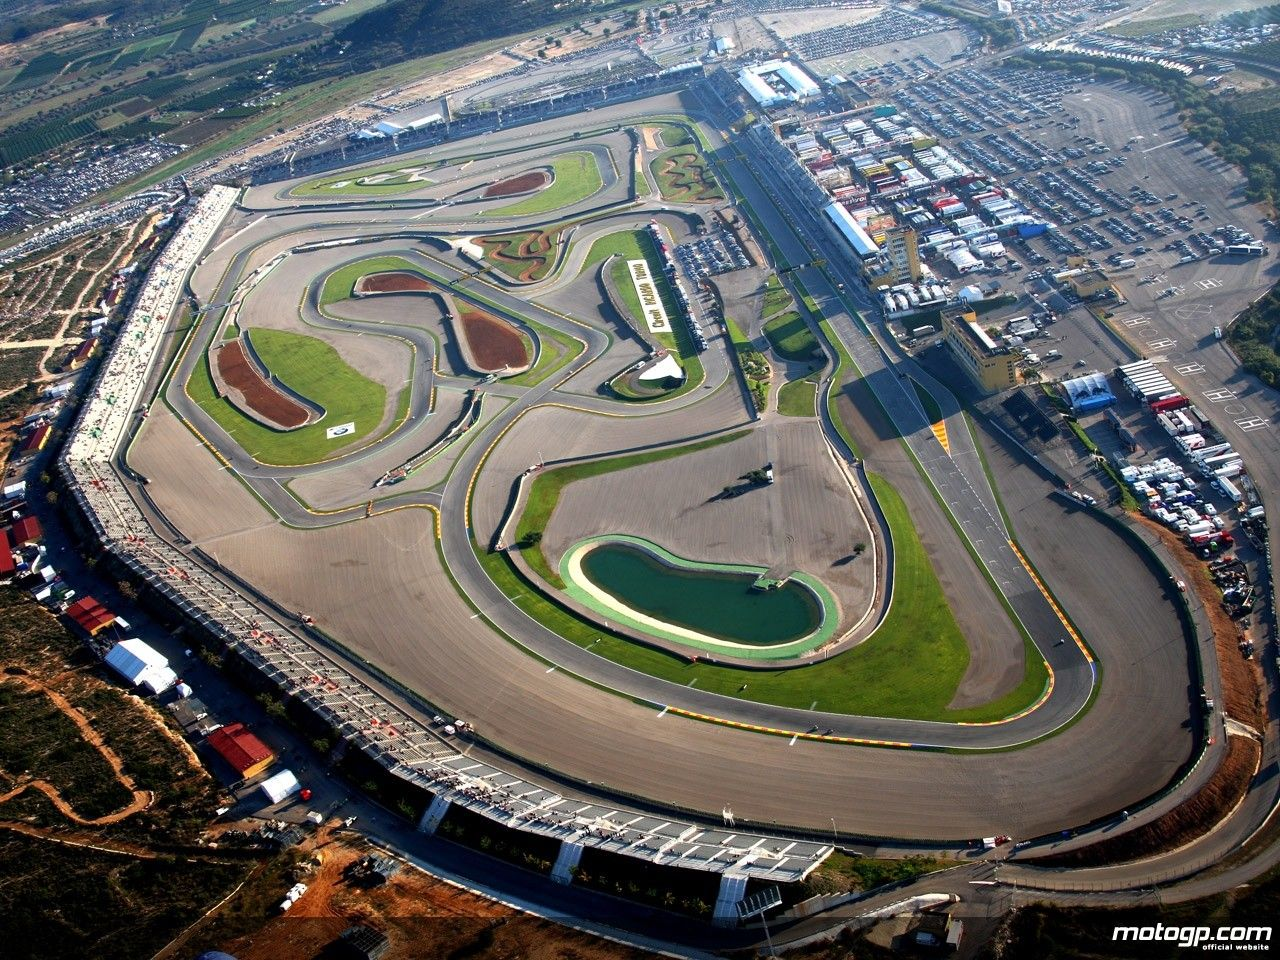 Circuito Brno Motogp : Brno circuit google search race tracks circuits